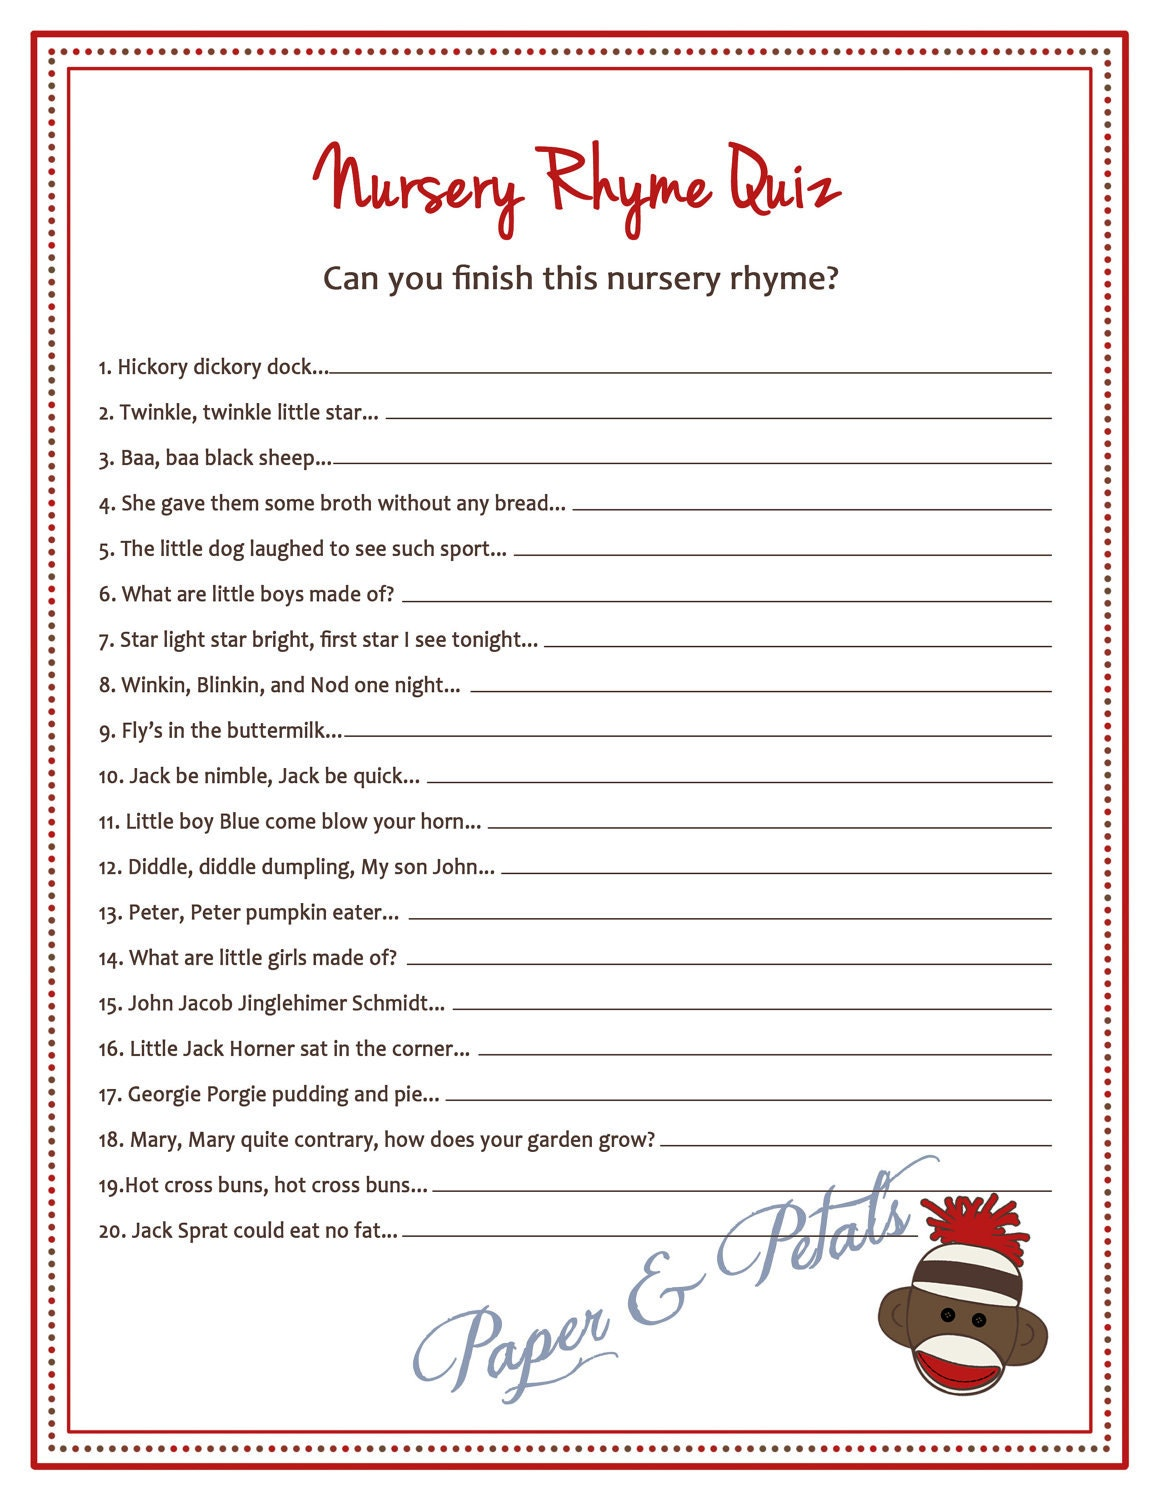 Sock monkey inspired baby shower nursery rhyme game printable - Divorce shoppe ...